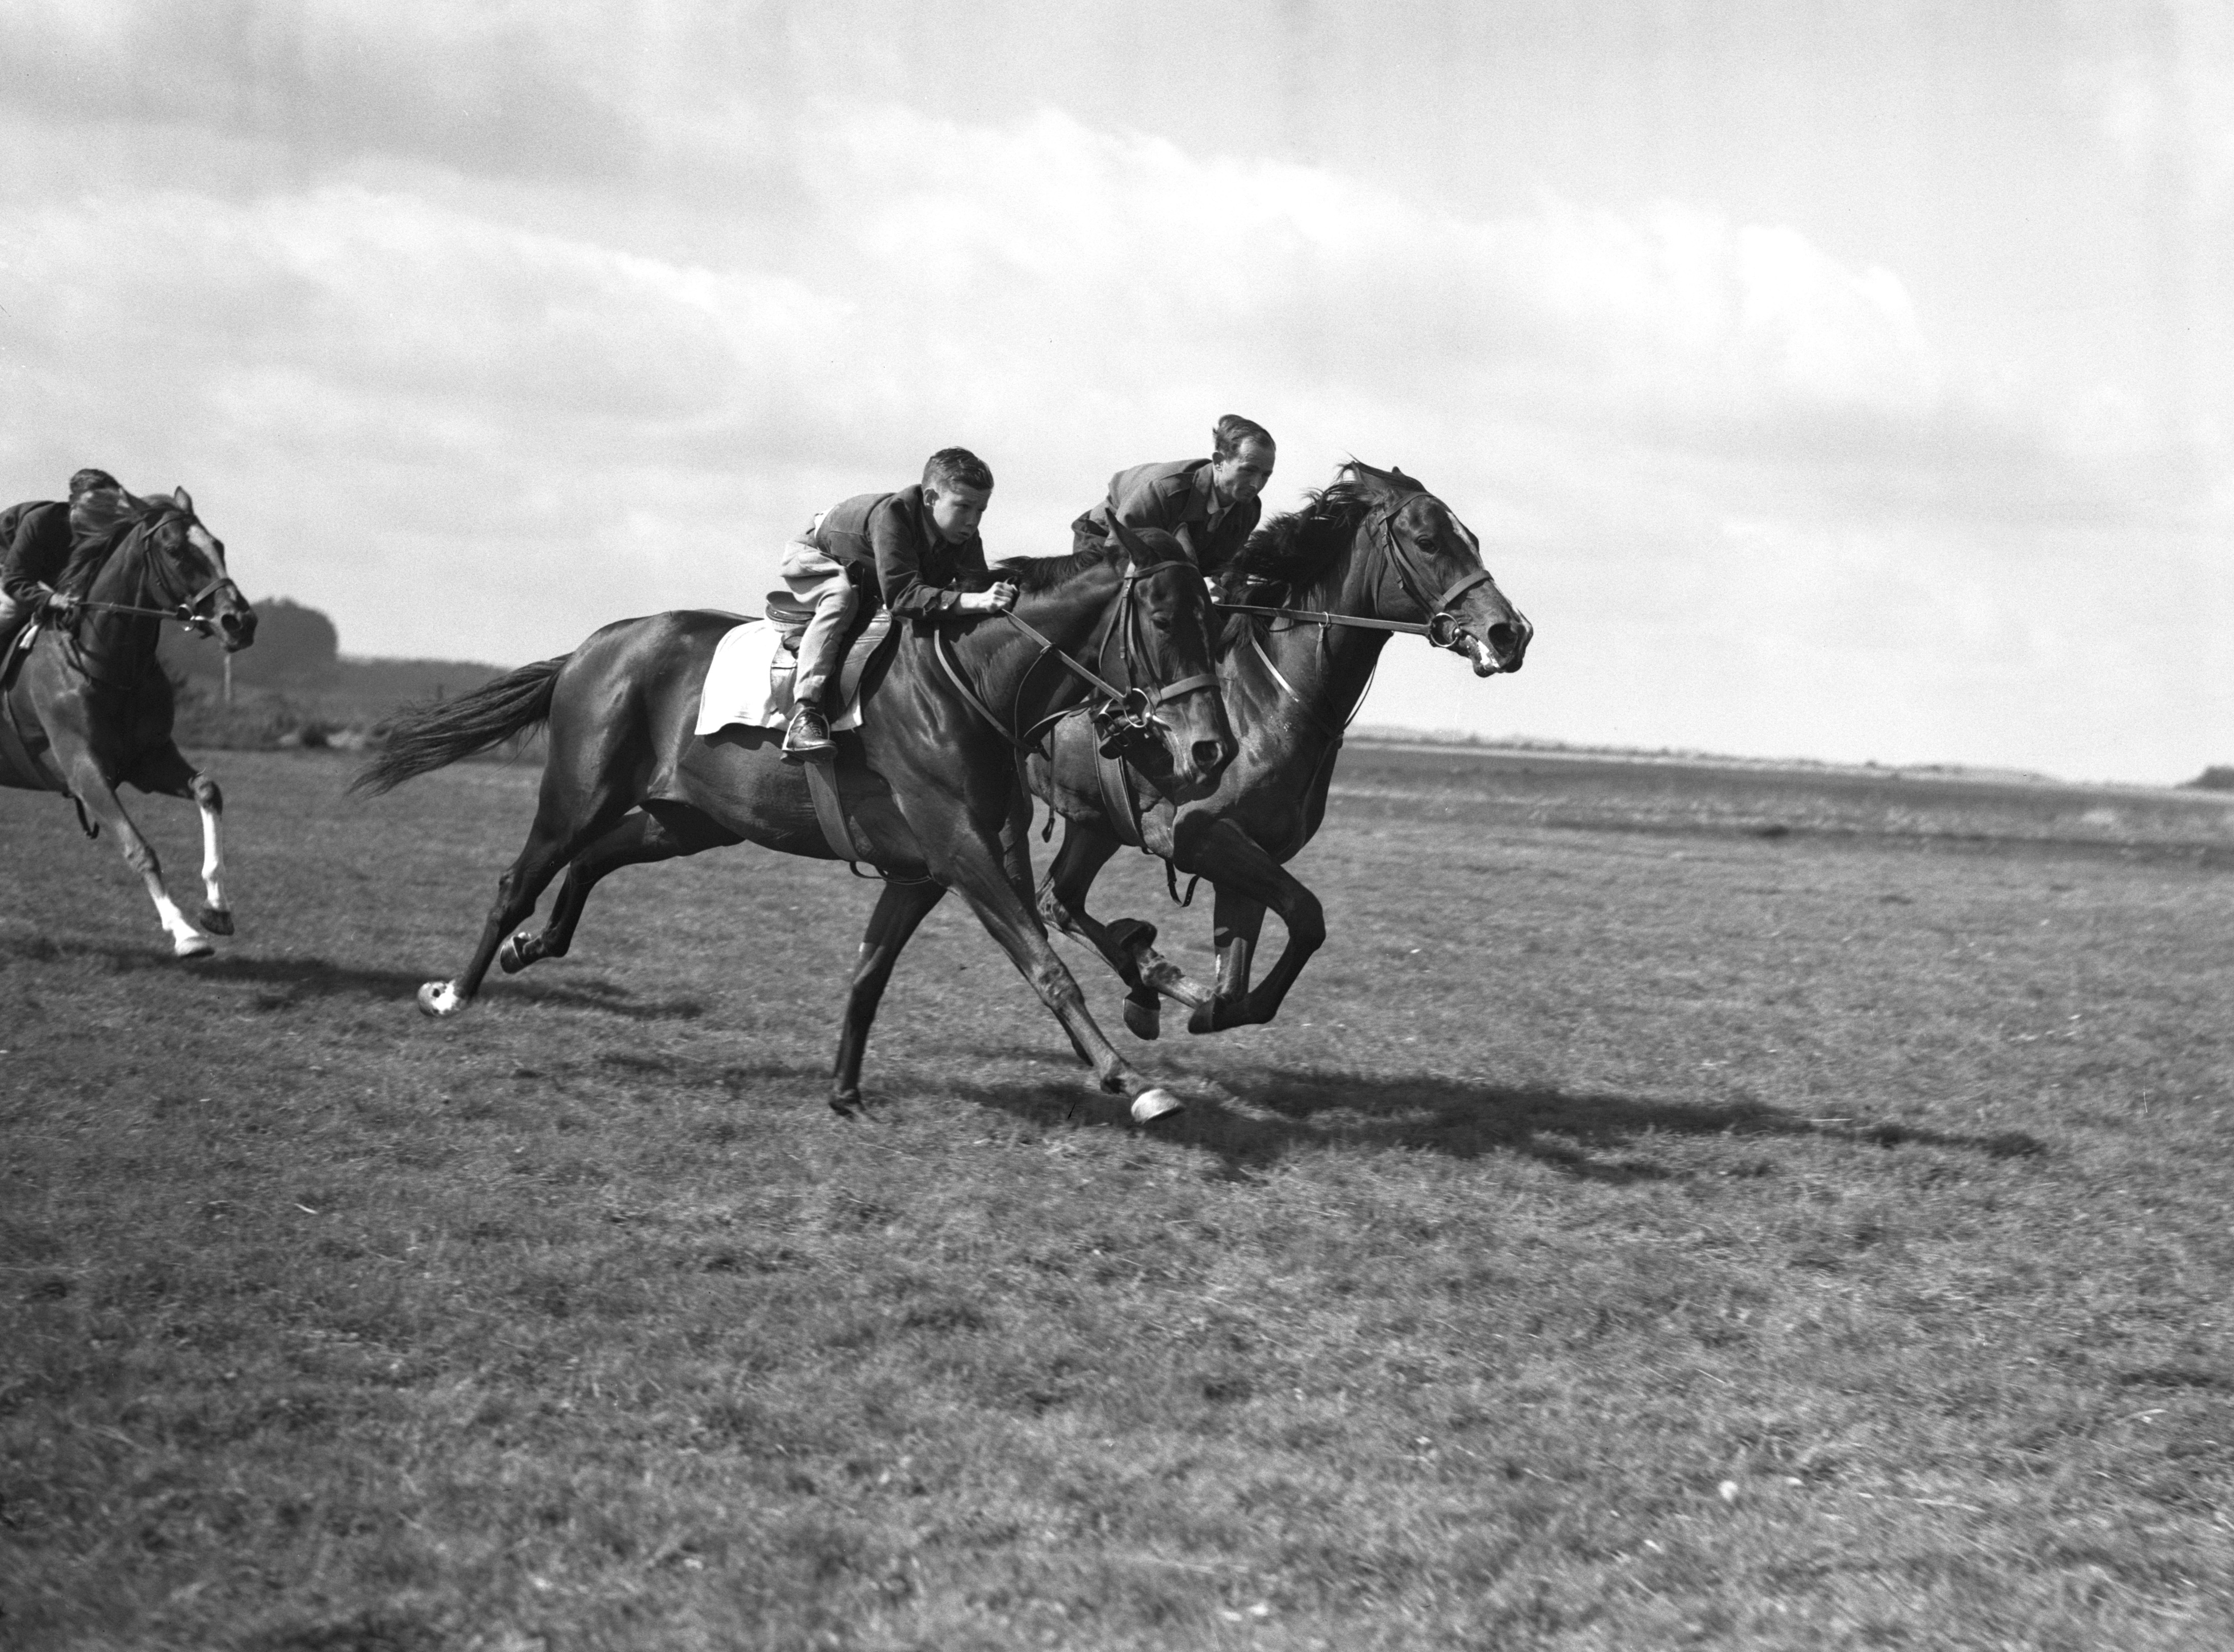 Lester Piggott in action as a 12-year-old at his father Keith's stables in Lambourn